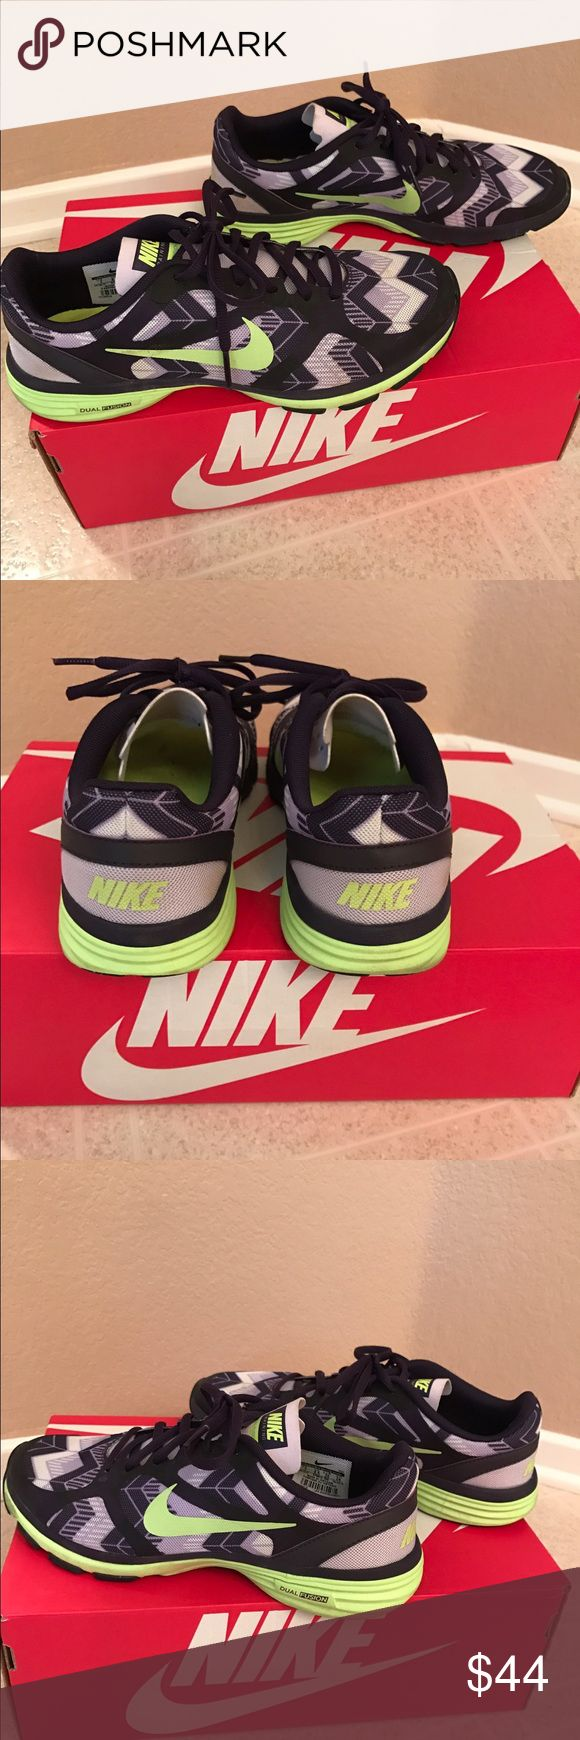 Women's Nike dual fusion shoes Great condition! Women nike dual fusion shoes. Size 7! Nike Shoes Athletic Shoes